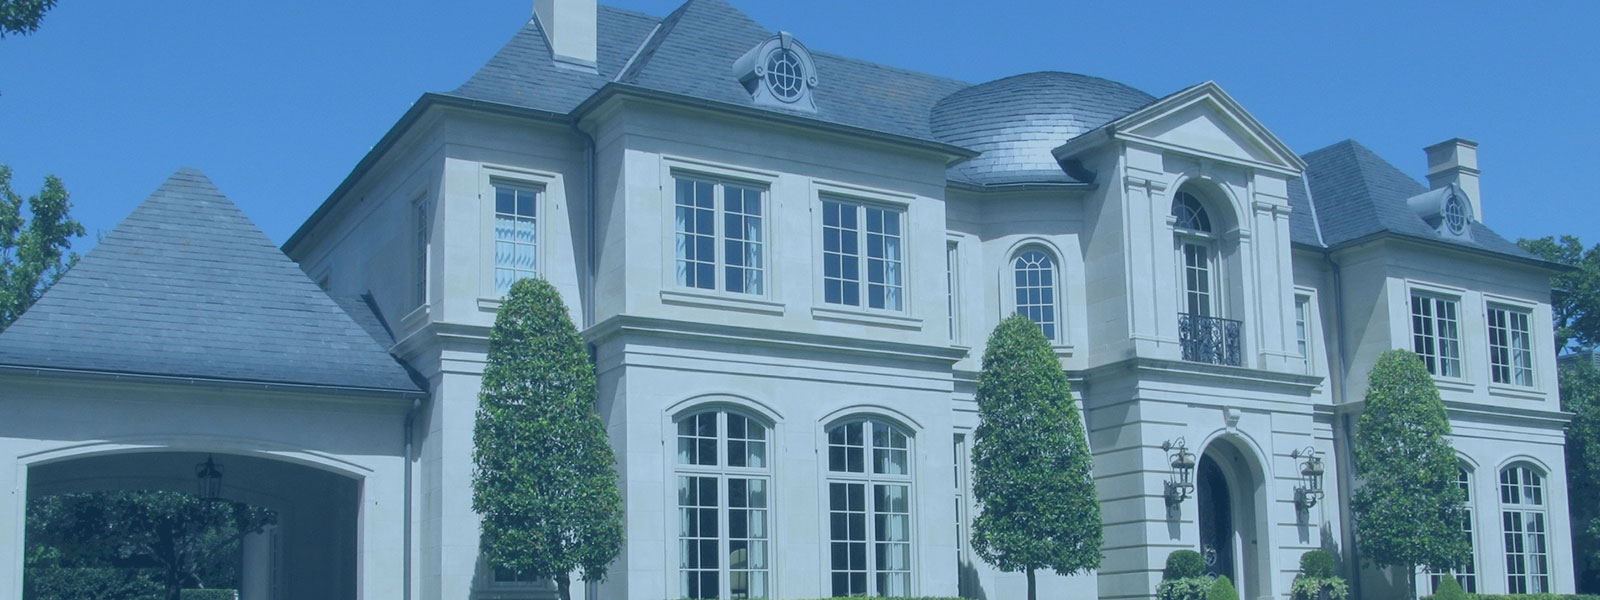 Things To Consider While Selecting The Real Estate Management Software